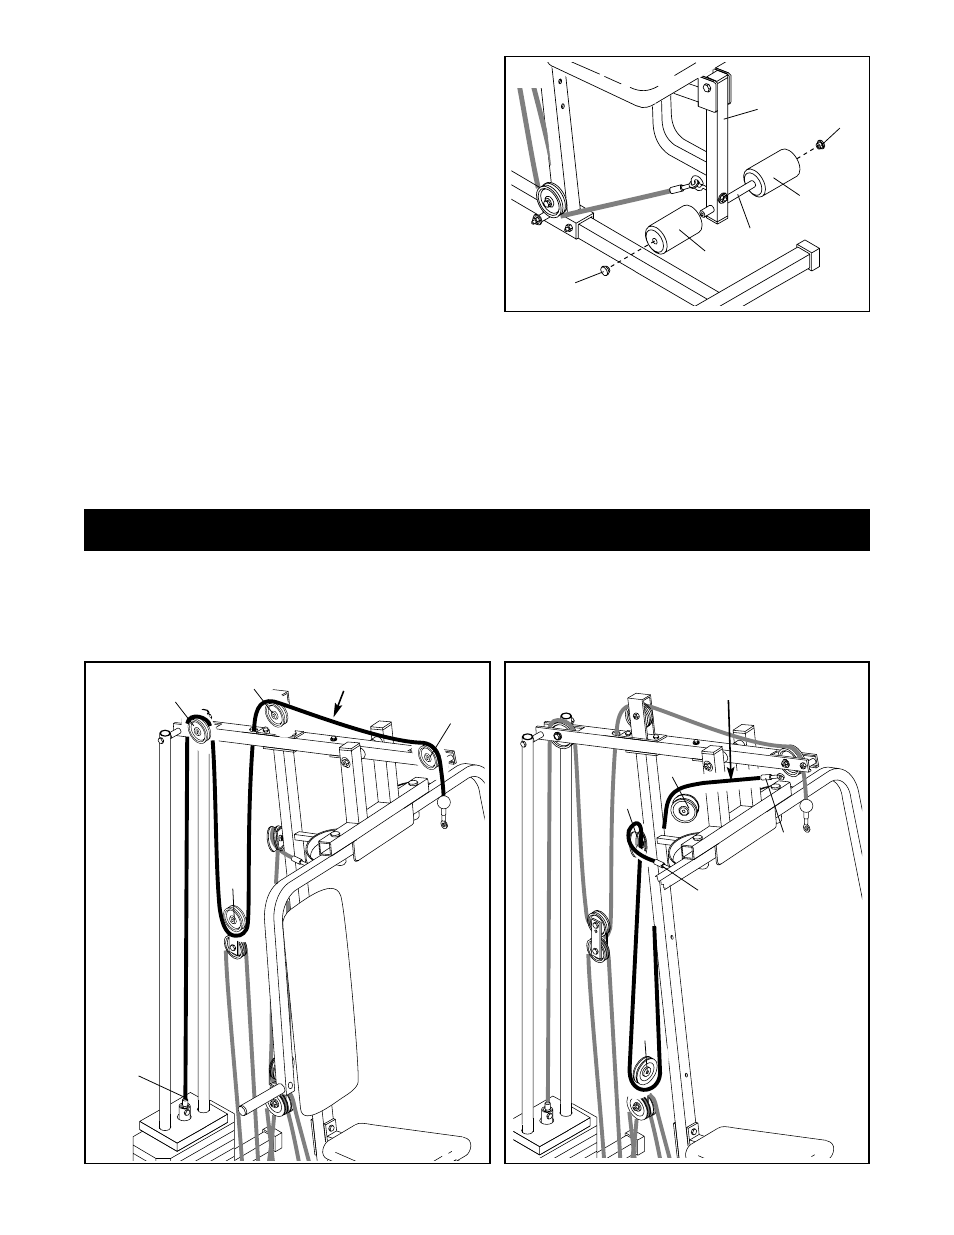 Cable diagram (1) | Weider WESY74090 User Manual | Page 15 / 27 on cable table, cable parts, cable chart, cable display, cable filter, cable label, cable drawing, cable plate, cable specification, cable computer, cable audio, cable end, cable tester circuit, cable schematic, cable construction, cable install, cable internet, cable tools, cable wiring, cable gauge,